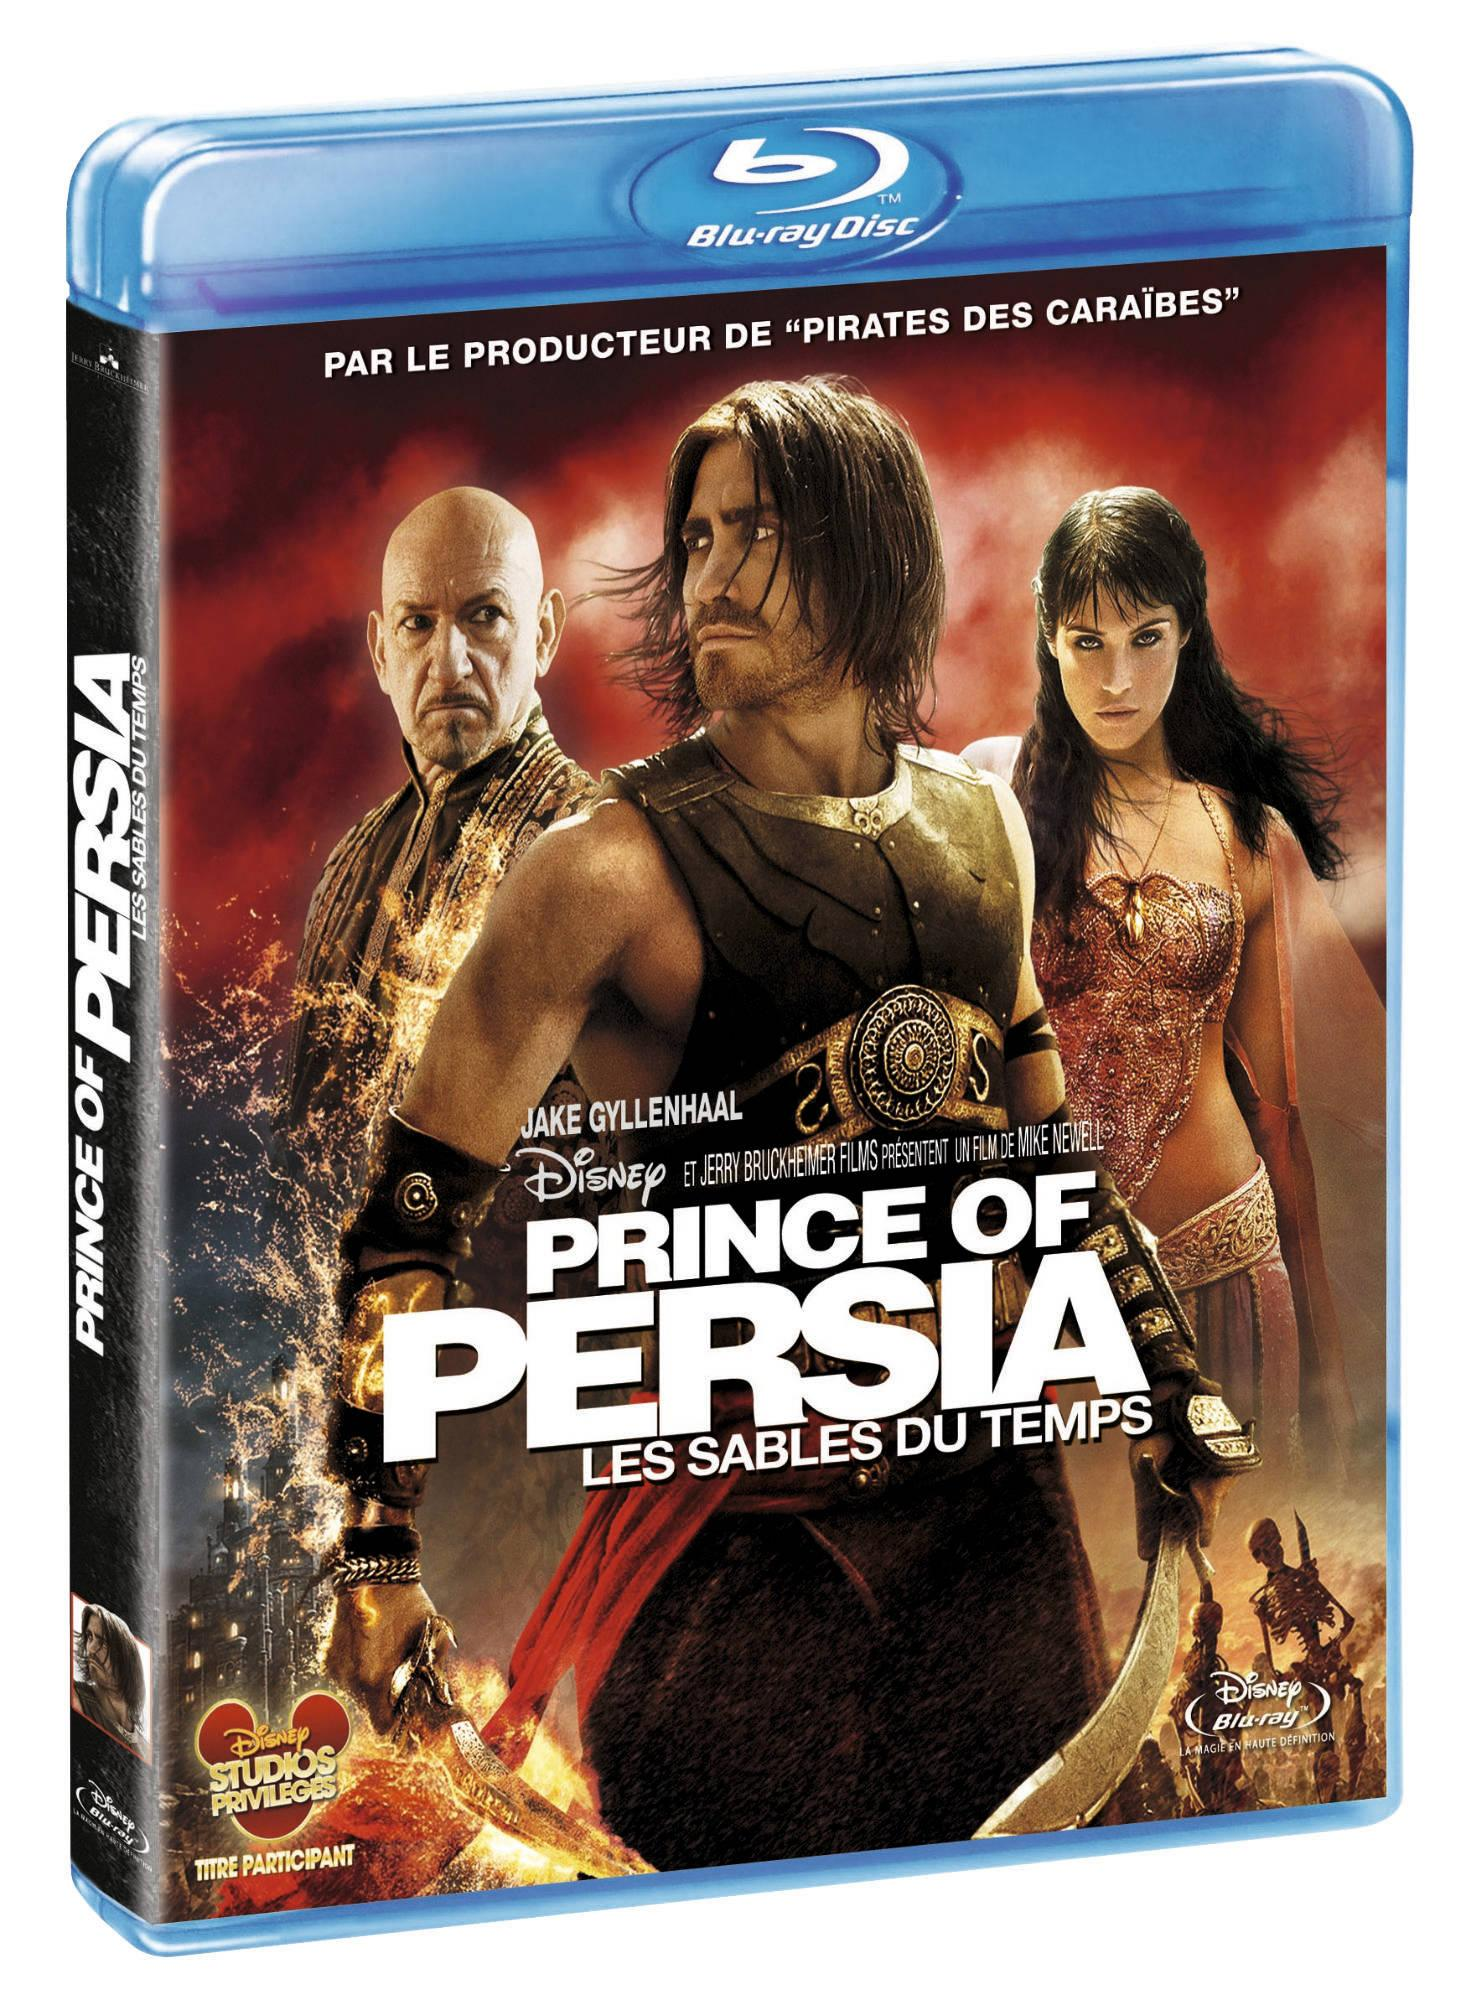 [MULTI] Prince of Persia : Les Sables du temps [Blu-Ray 720p]